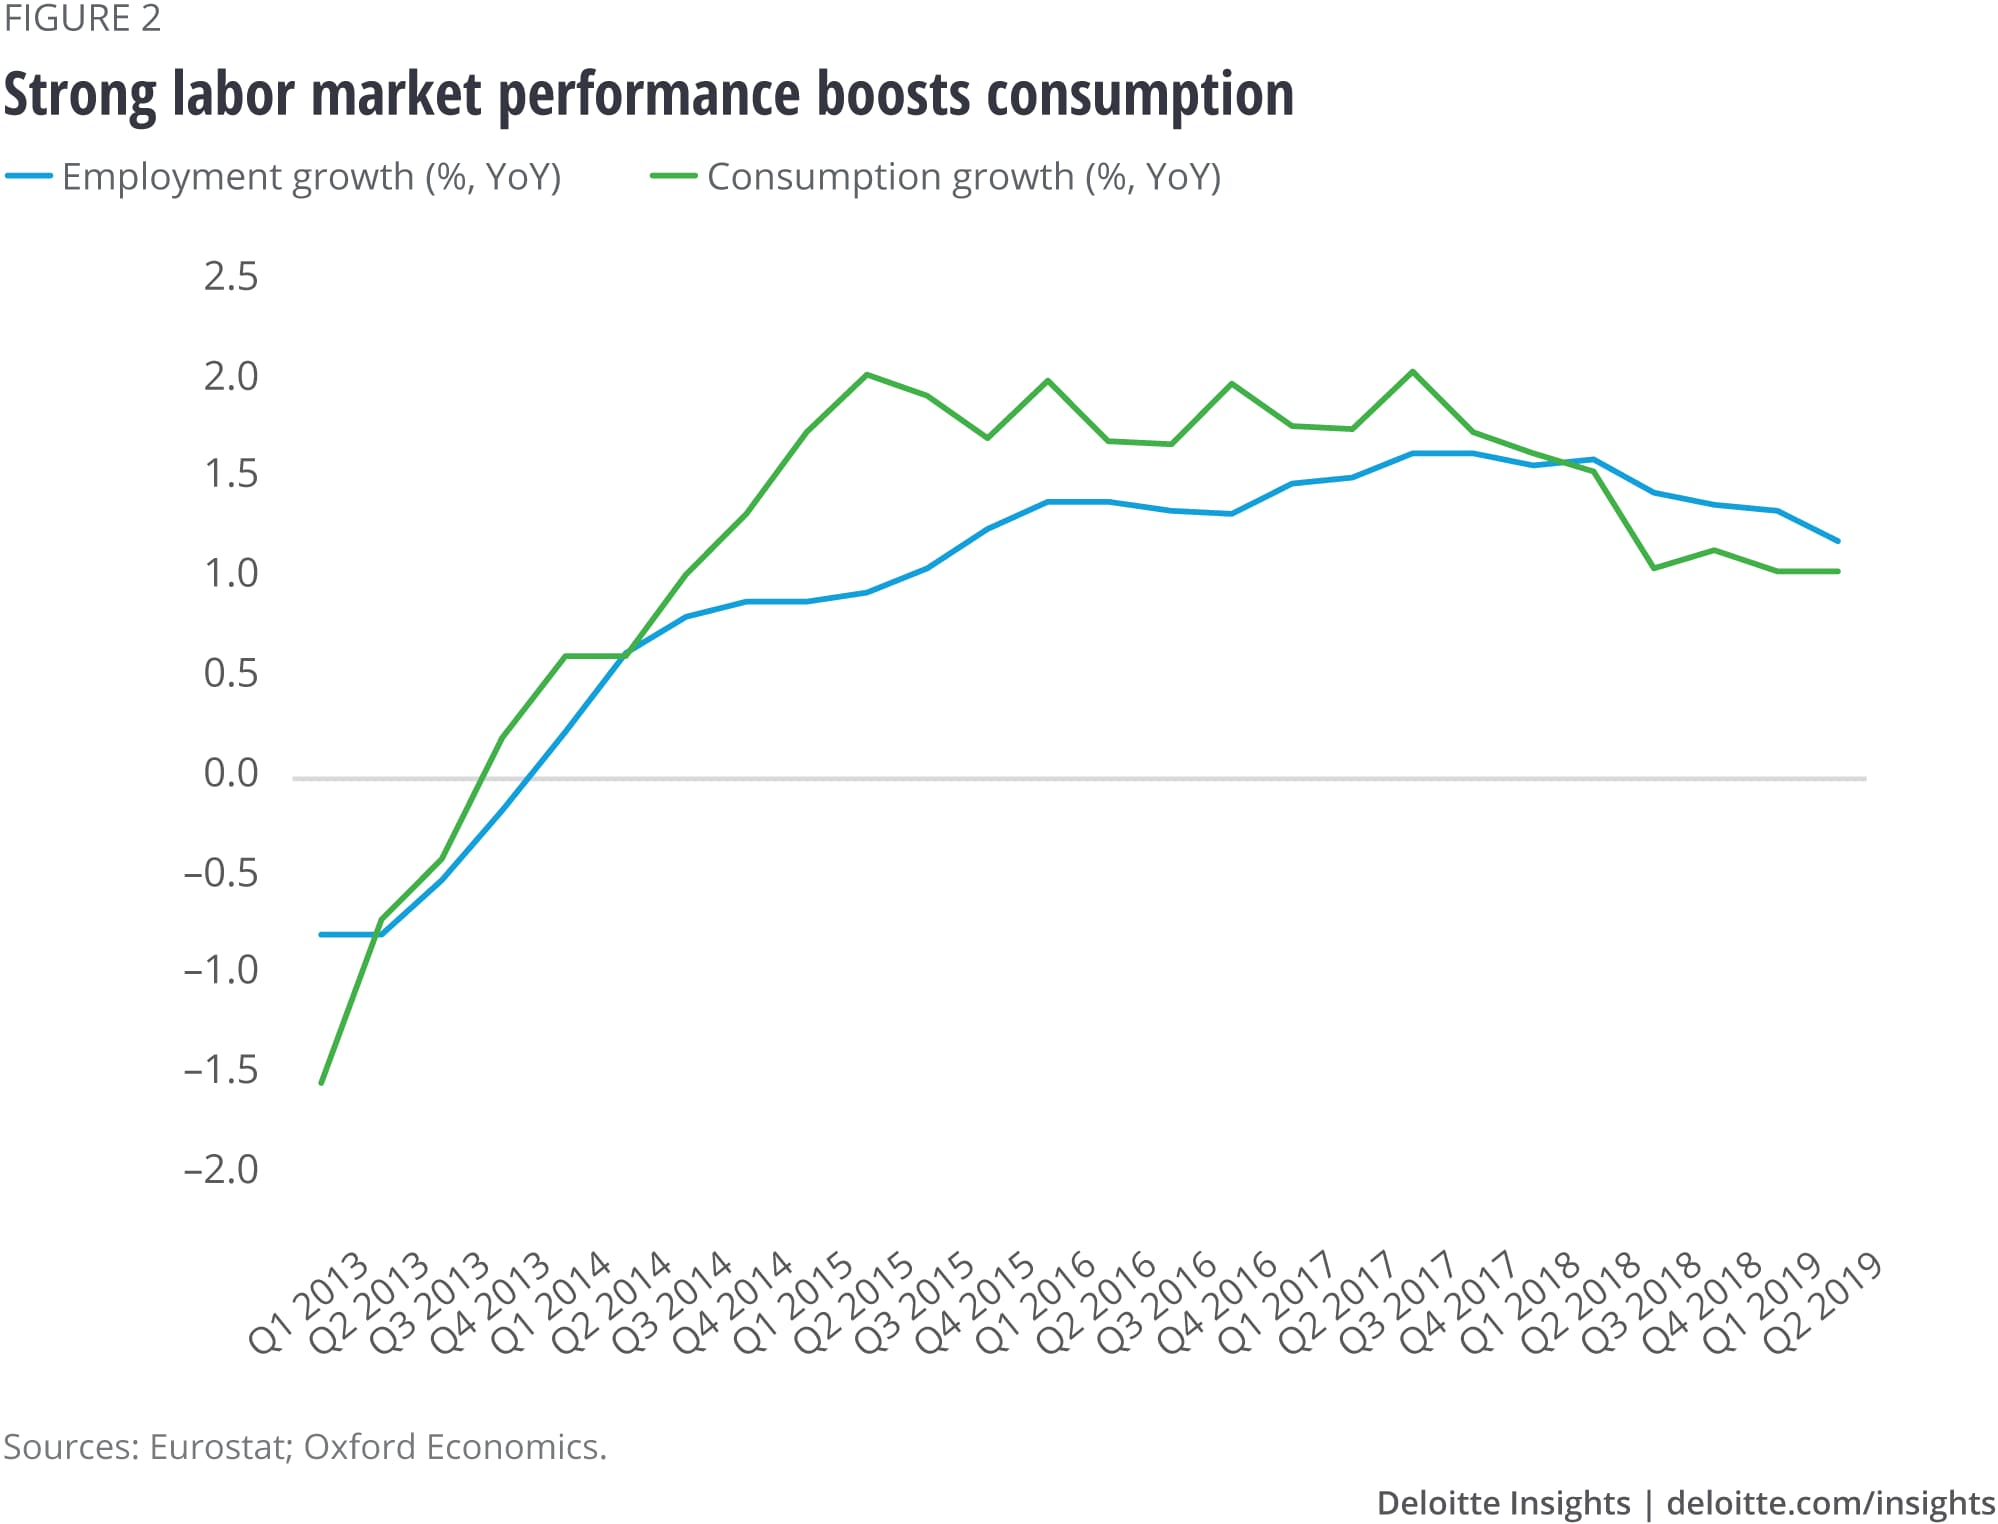 Strong labor market performance boosts consumption